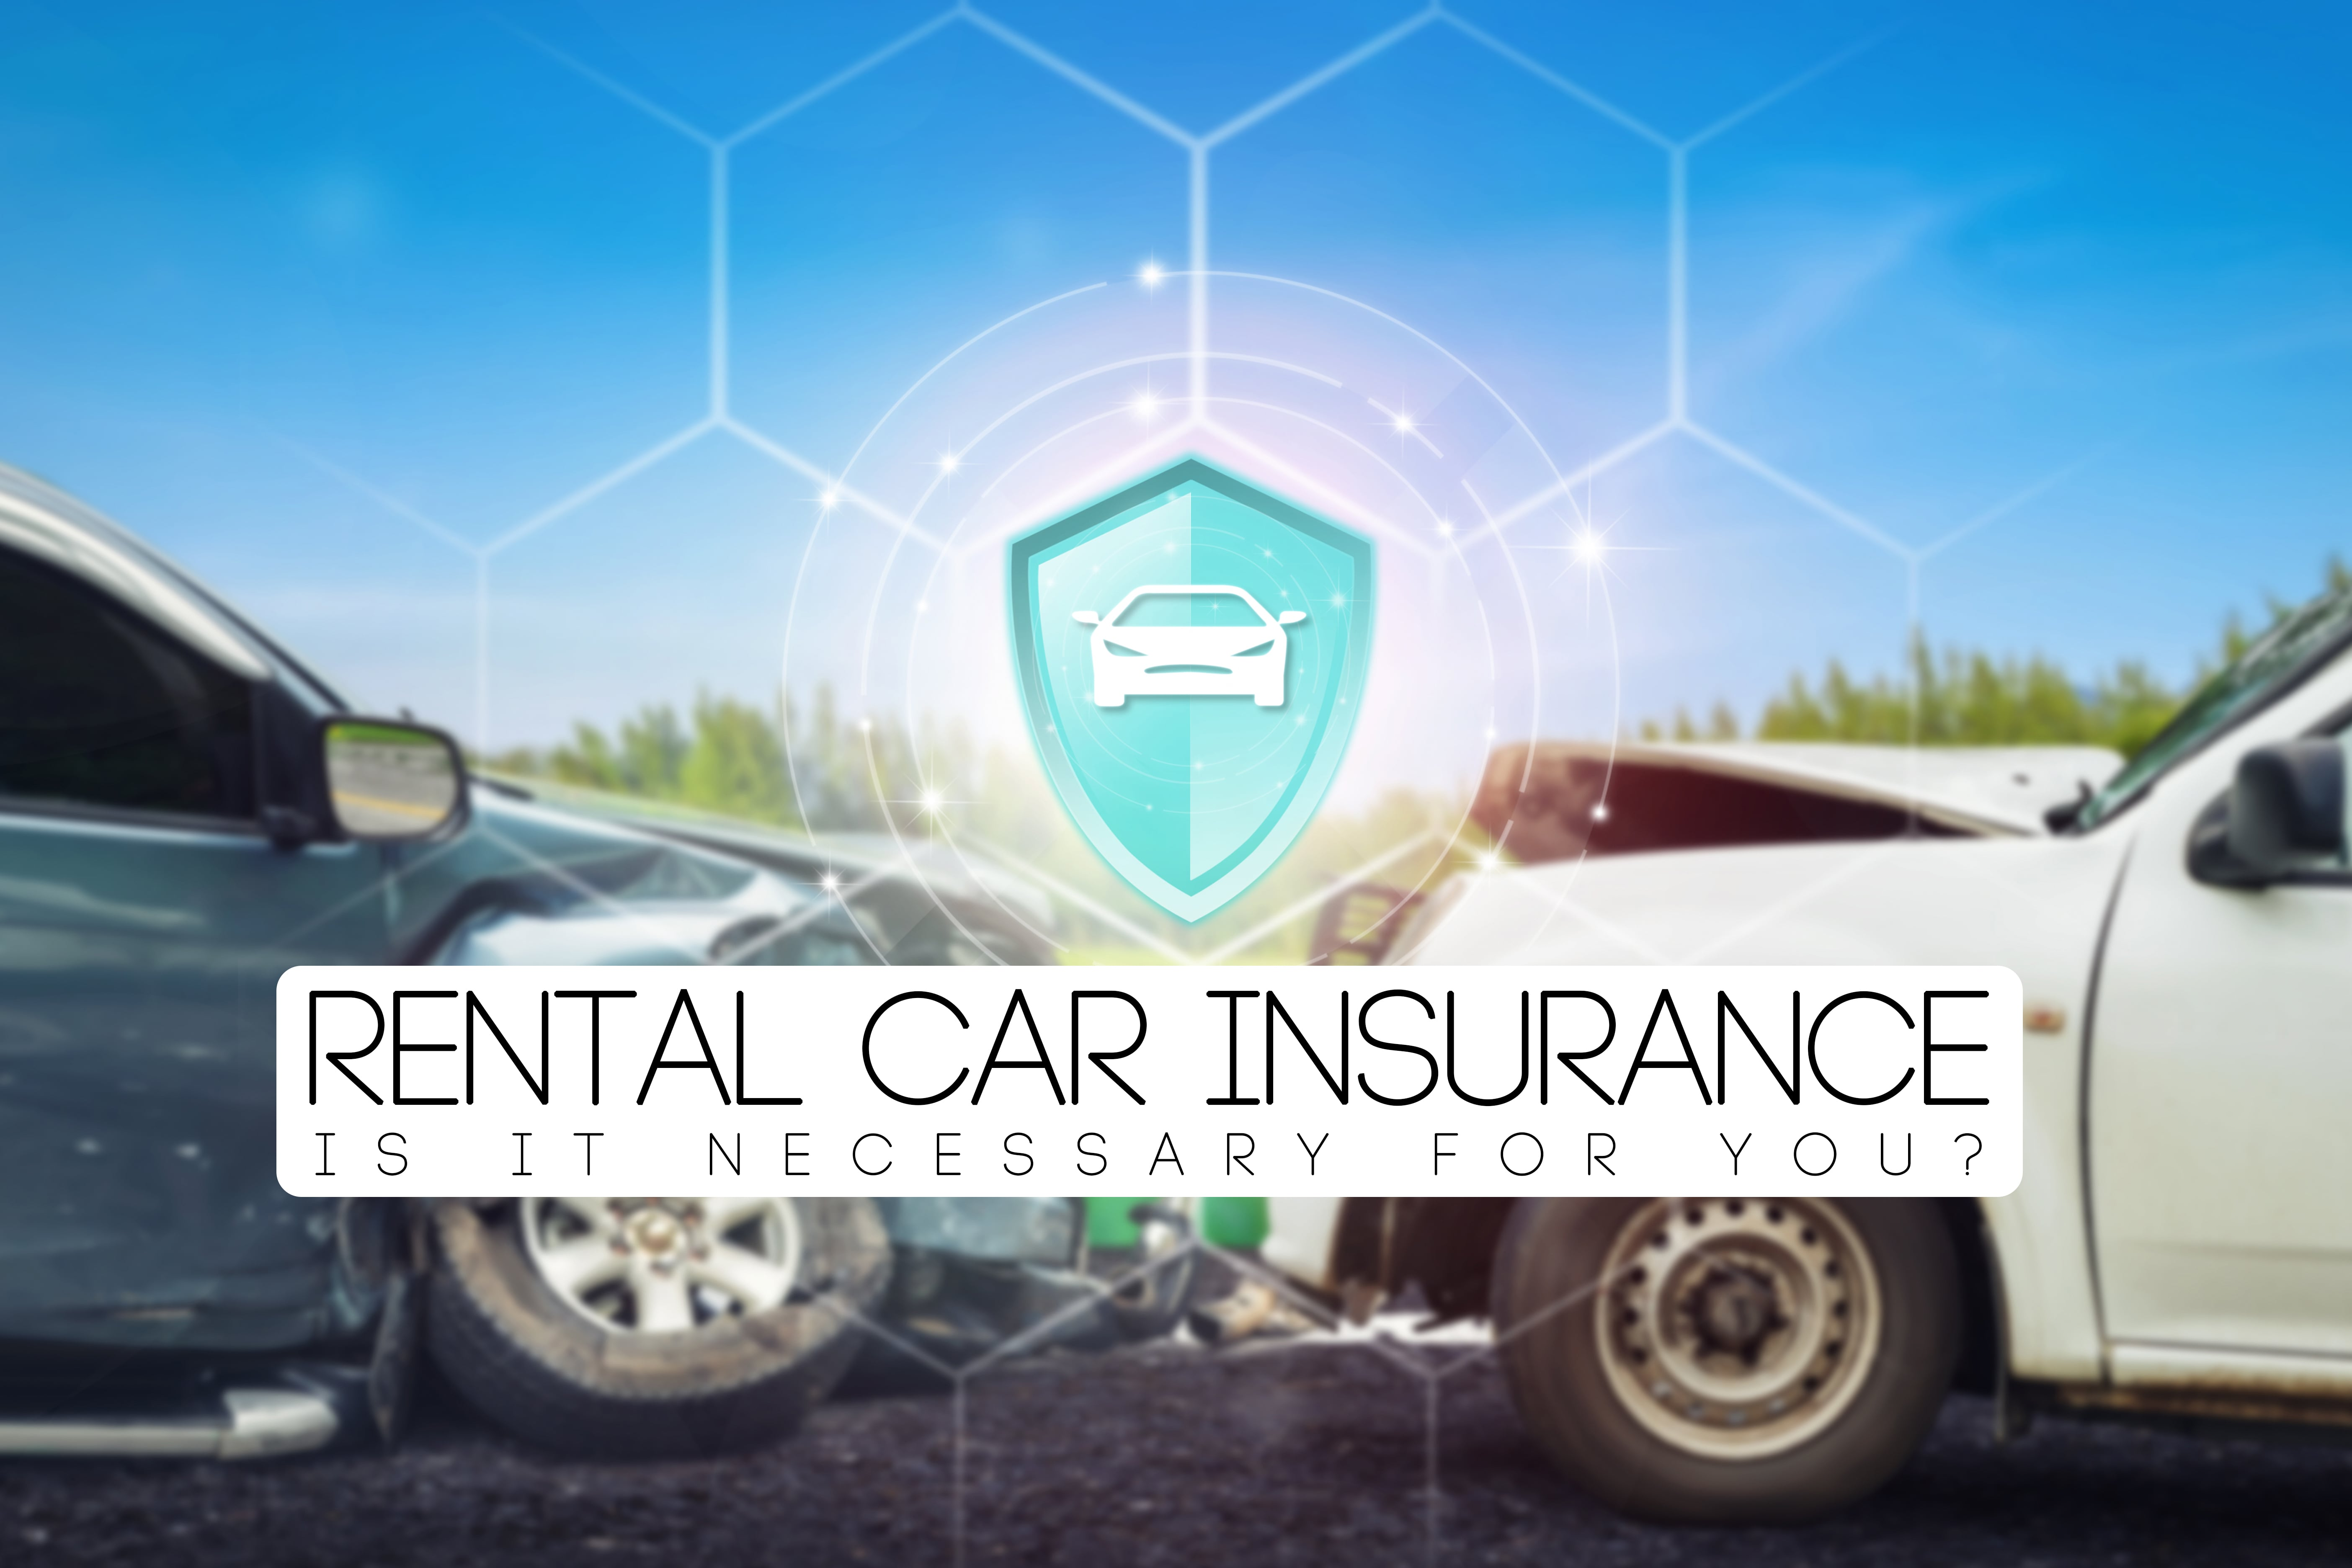 Rental Car Insurance: Is Rental Car Insurance Necessary For Me?